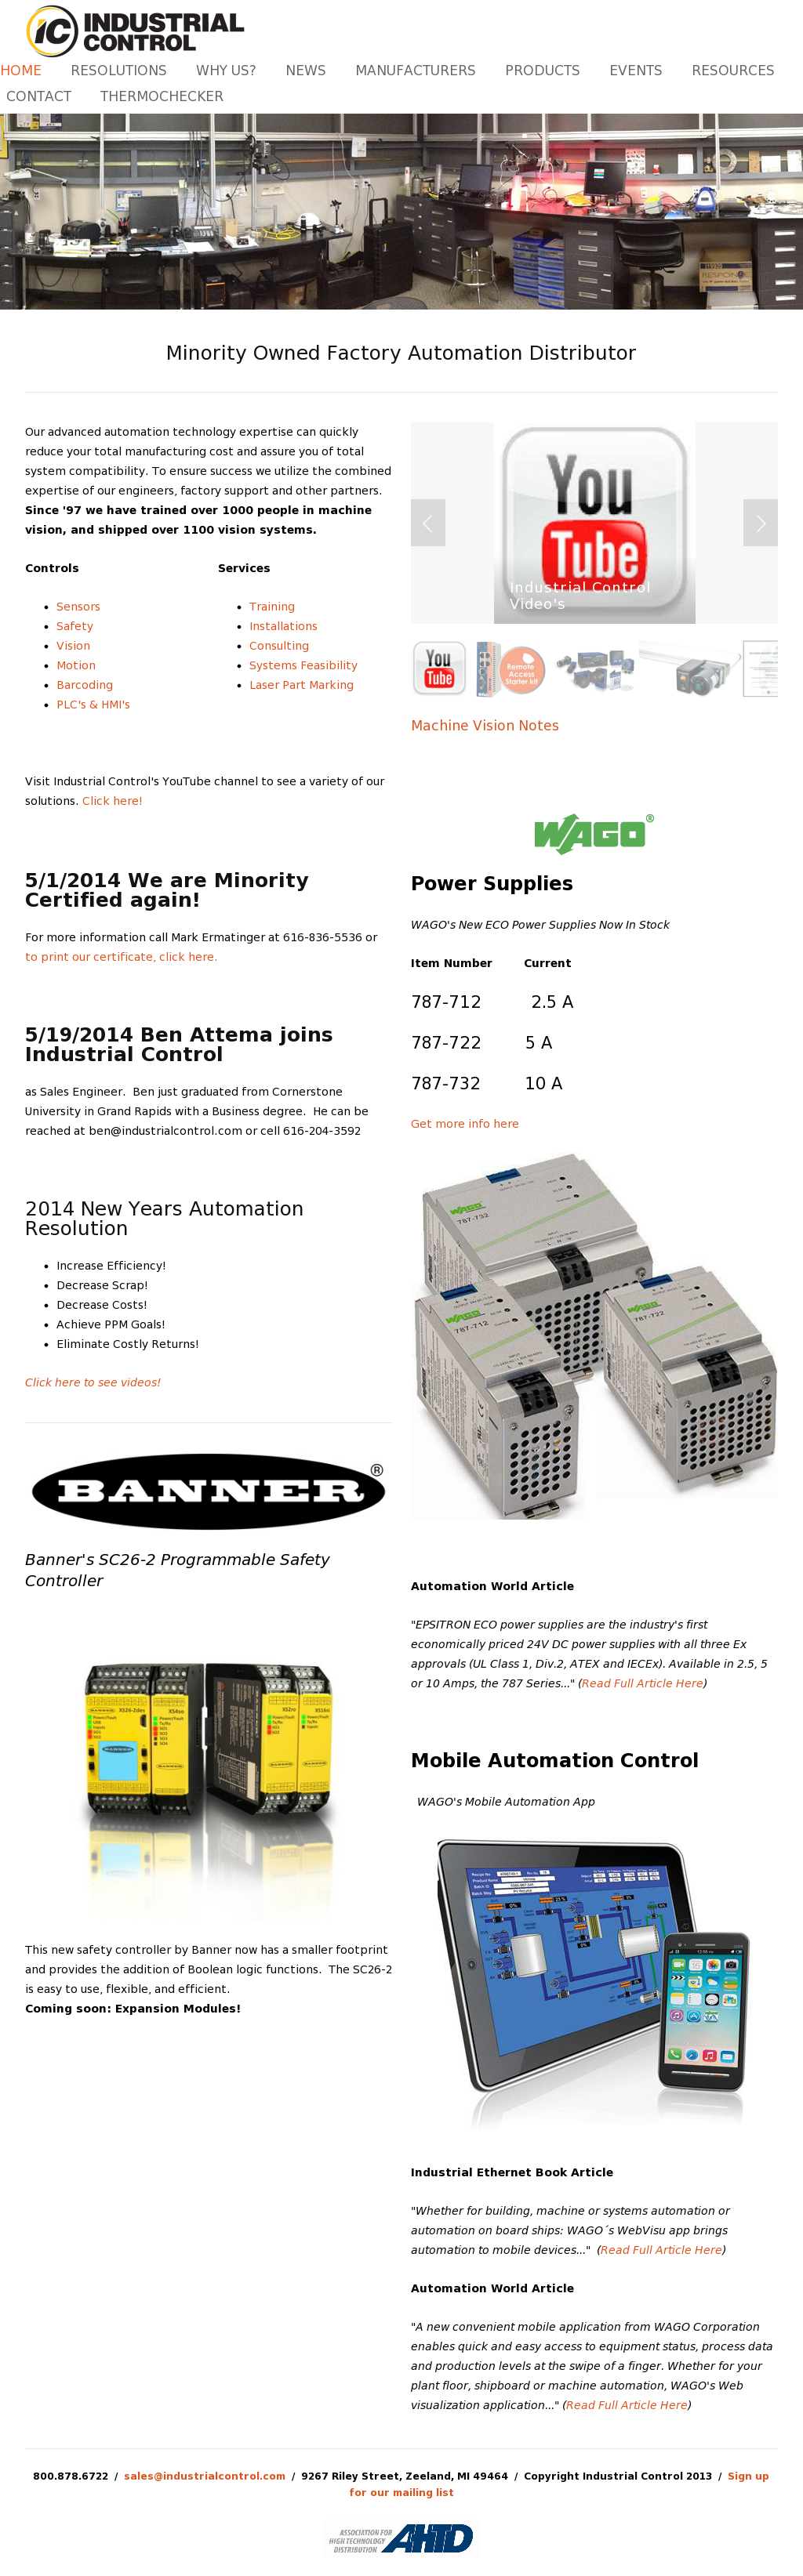 Industrialcontrol Competitors, Revenue and Employees - Owler